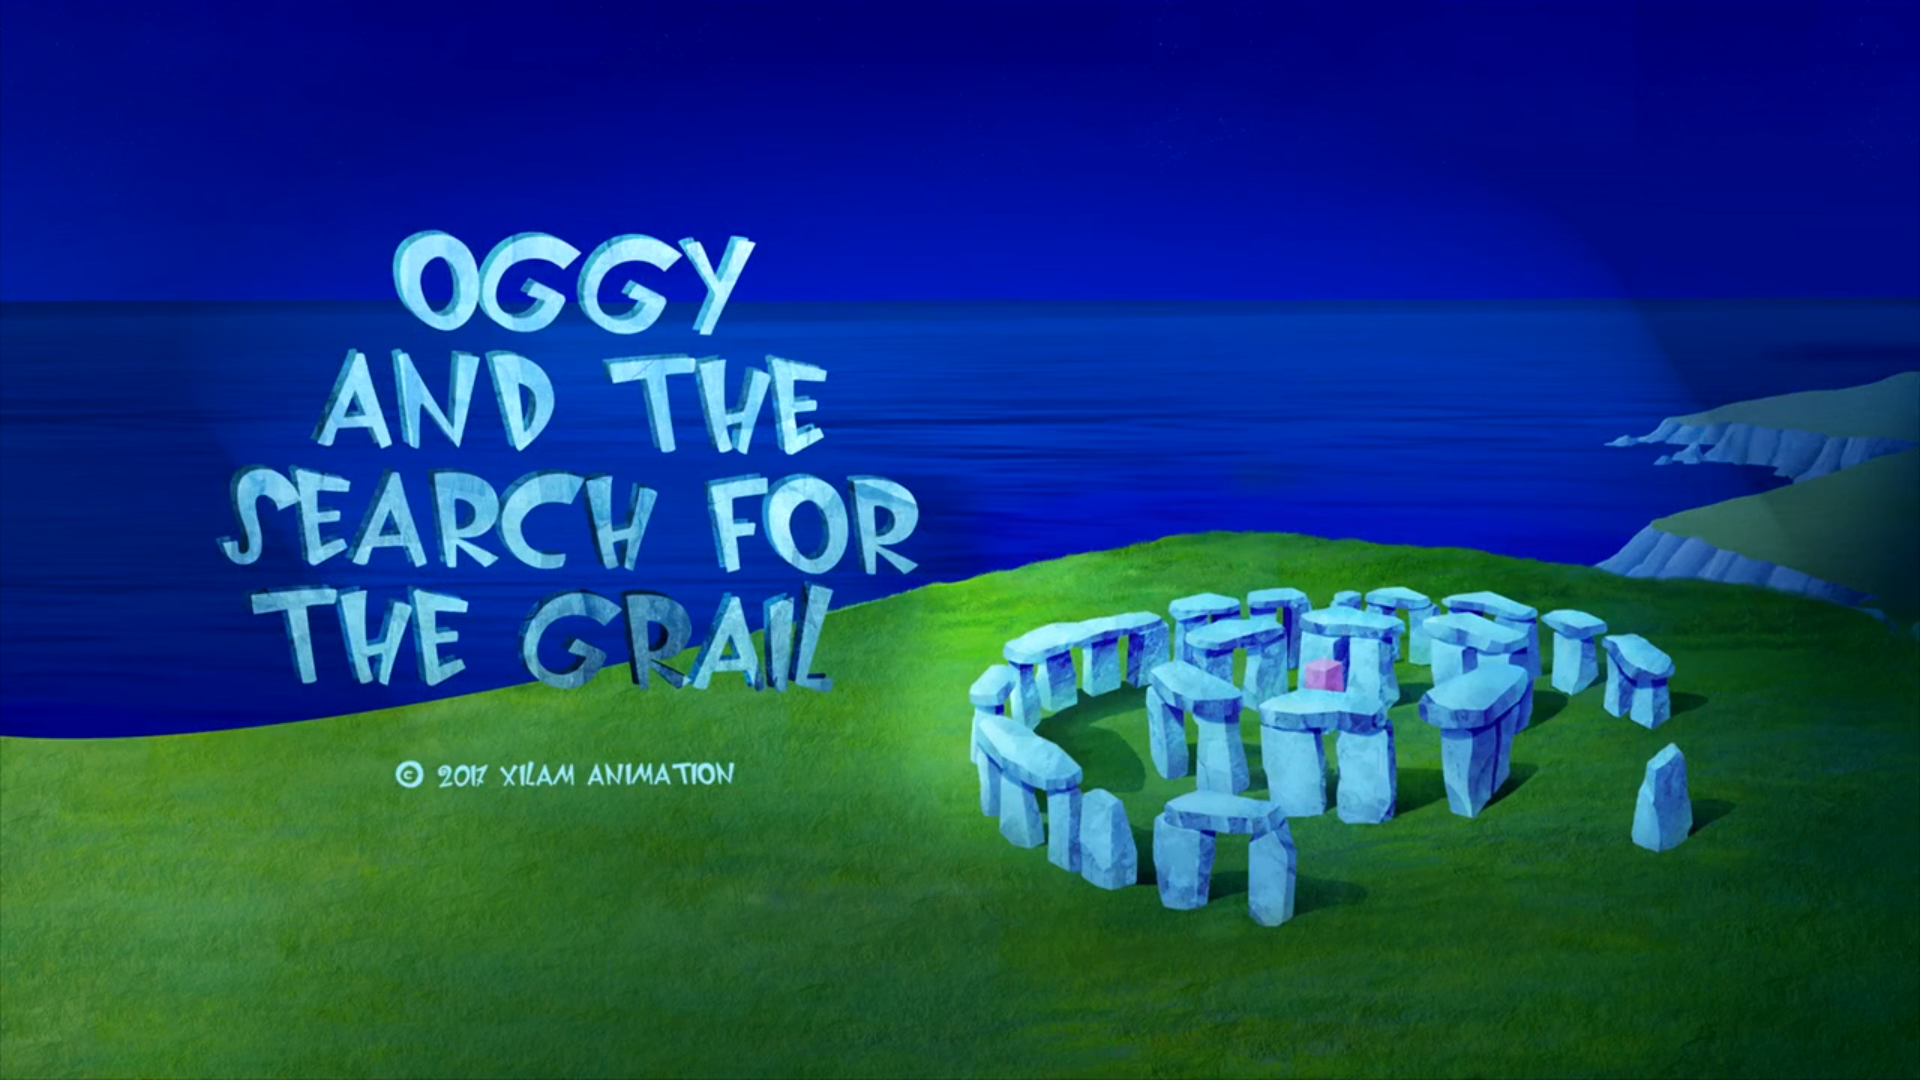 Oggy and the Search for the Grail